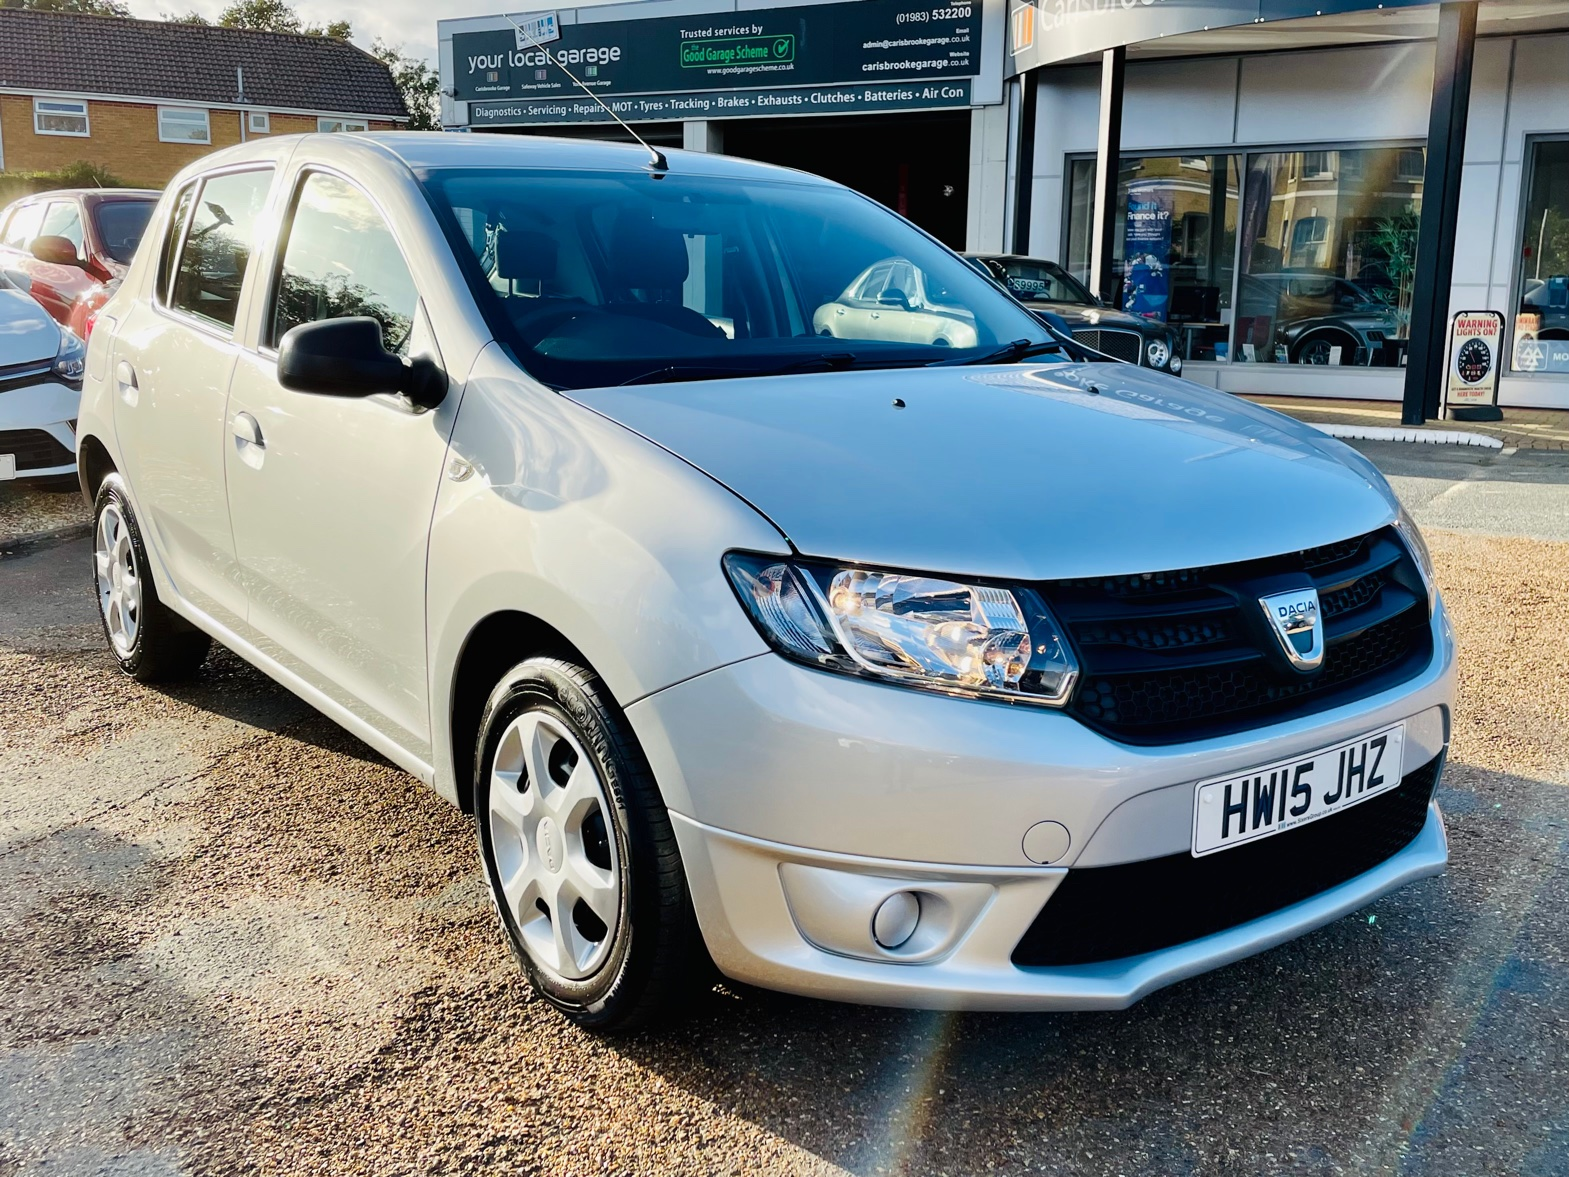 Car For Sale Dacia Sandero - HW15JHZ Sixers Group Image #1